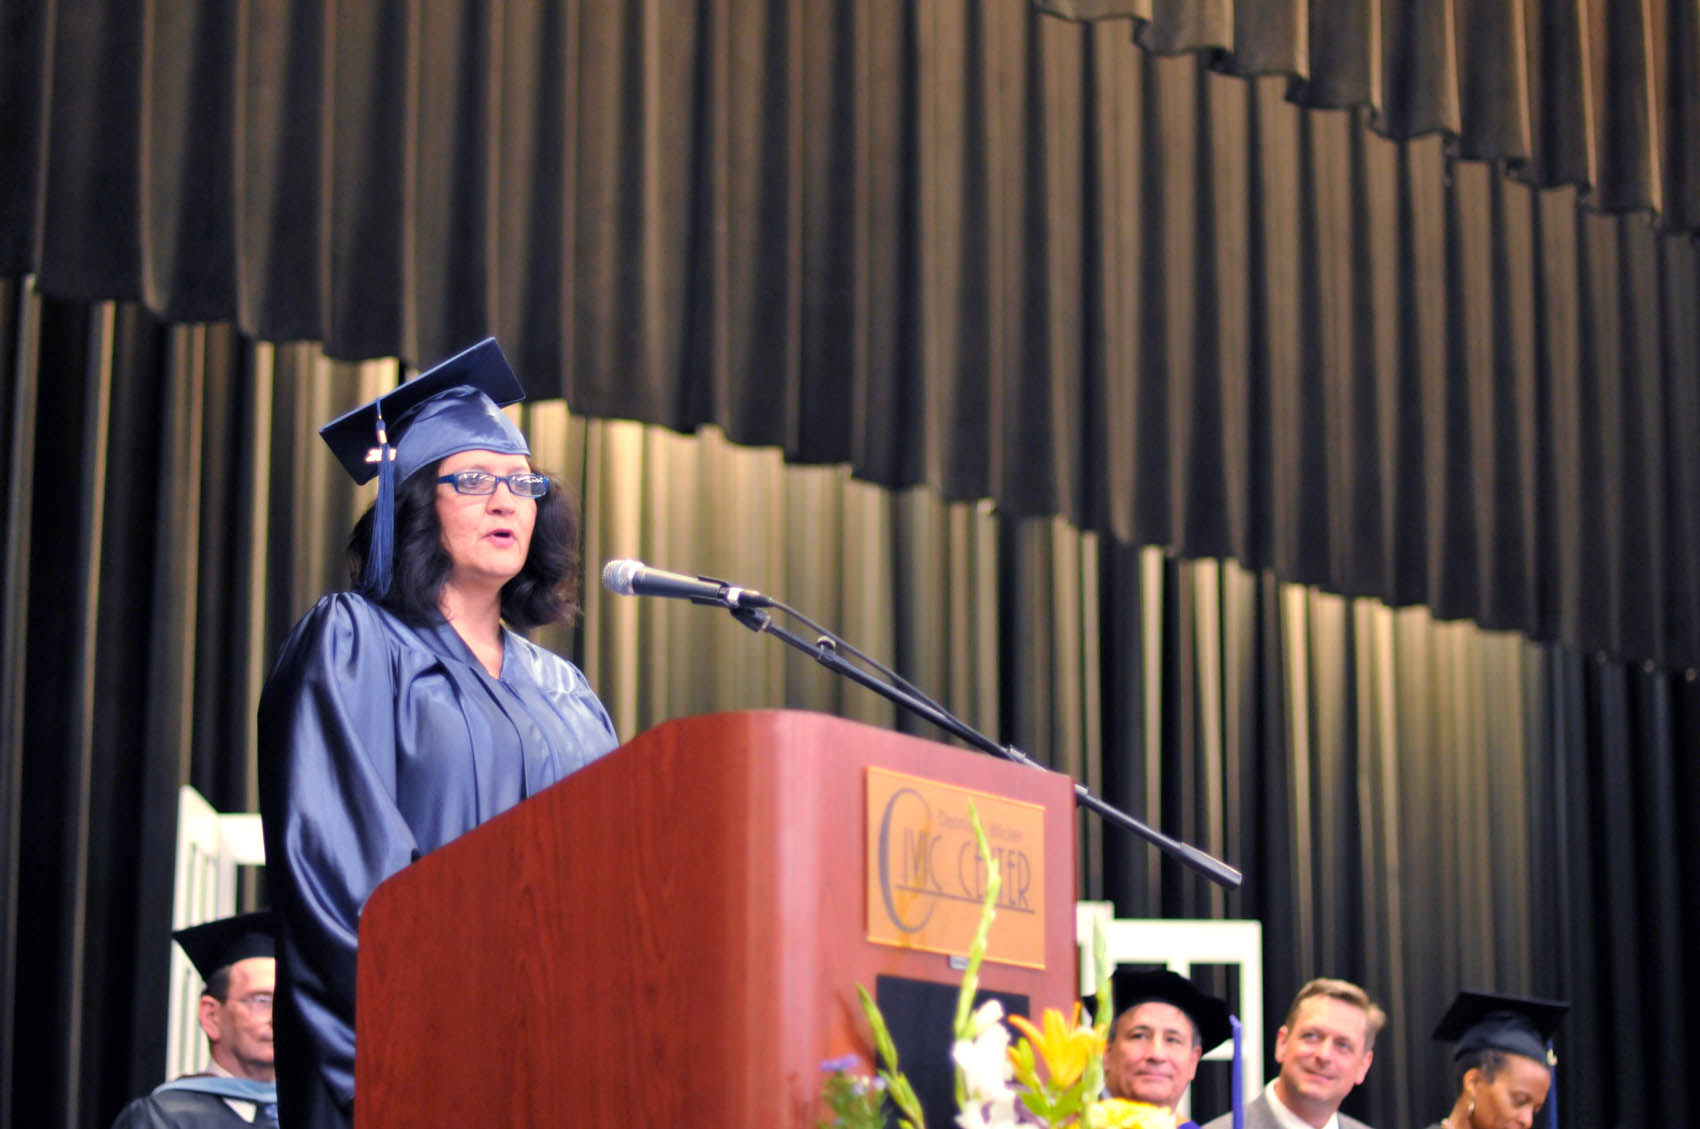 Click to enlarge,  Sheila Richardson, a Harnett County graduate, was one of the commencement student speakers at Central Carolina Community College's College and Career Readiness Commencement Exercises on June 16.